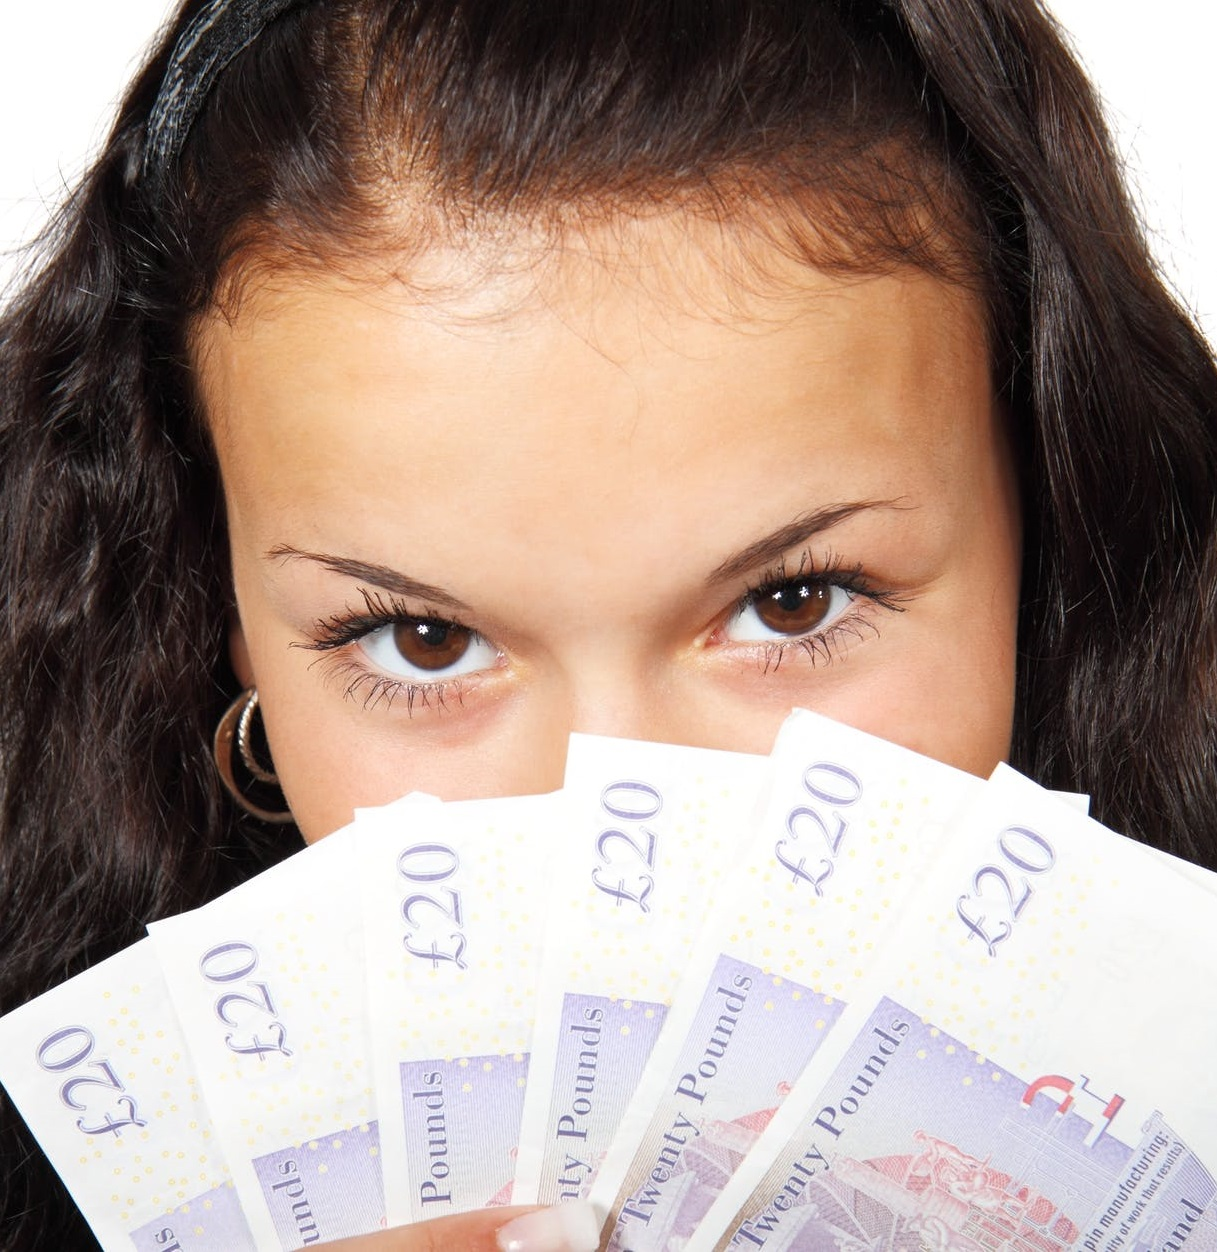 banknote business cash currency 41526 Lottery Website LottoGo.com Offering 20 EuroMillions Tickets For £2 To New Users